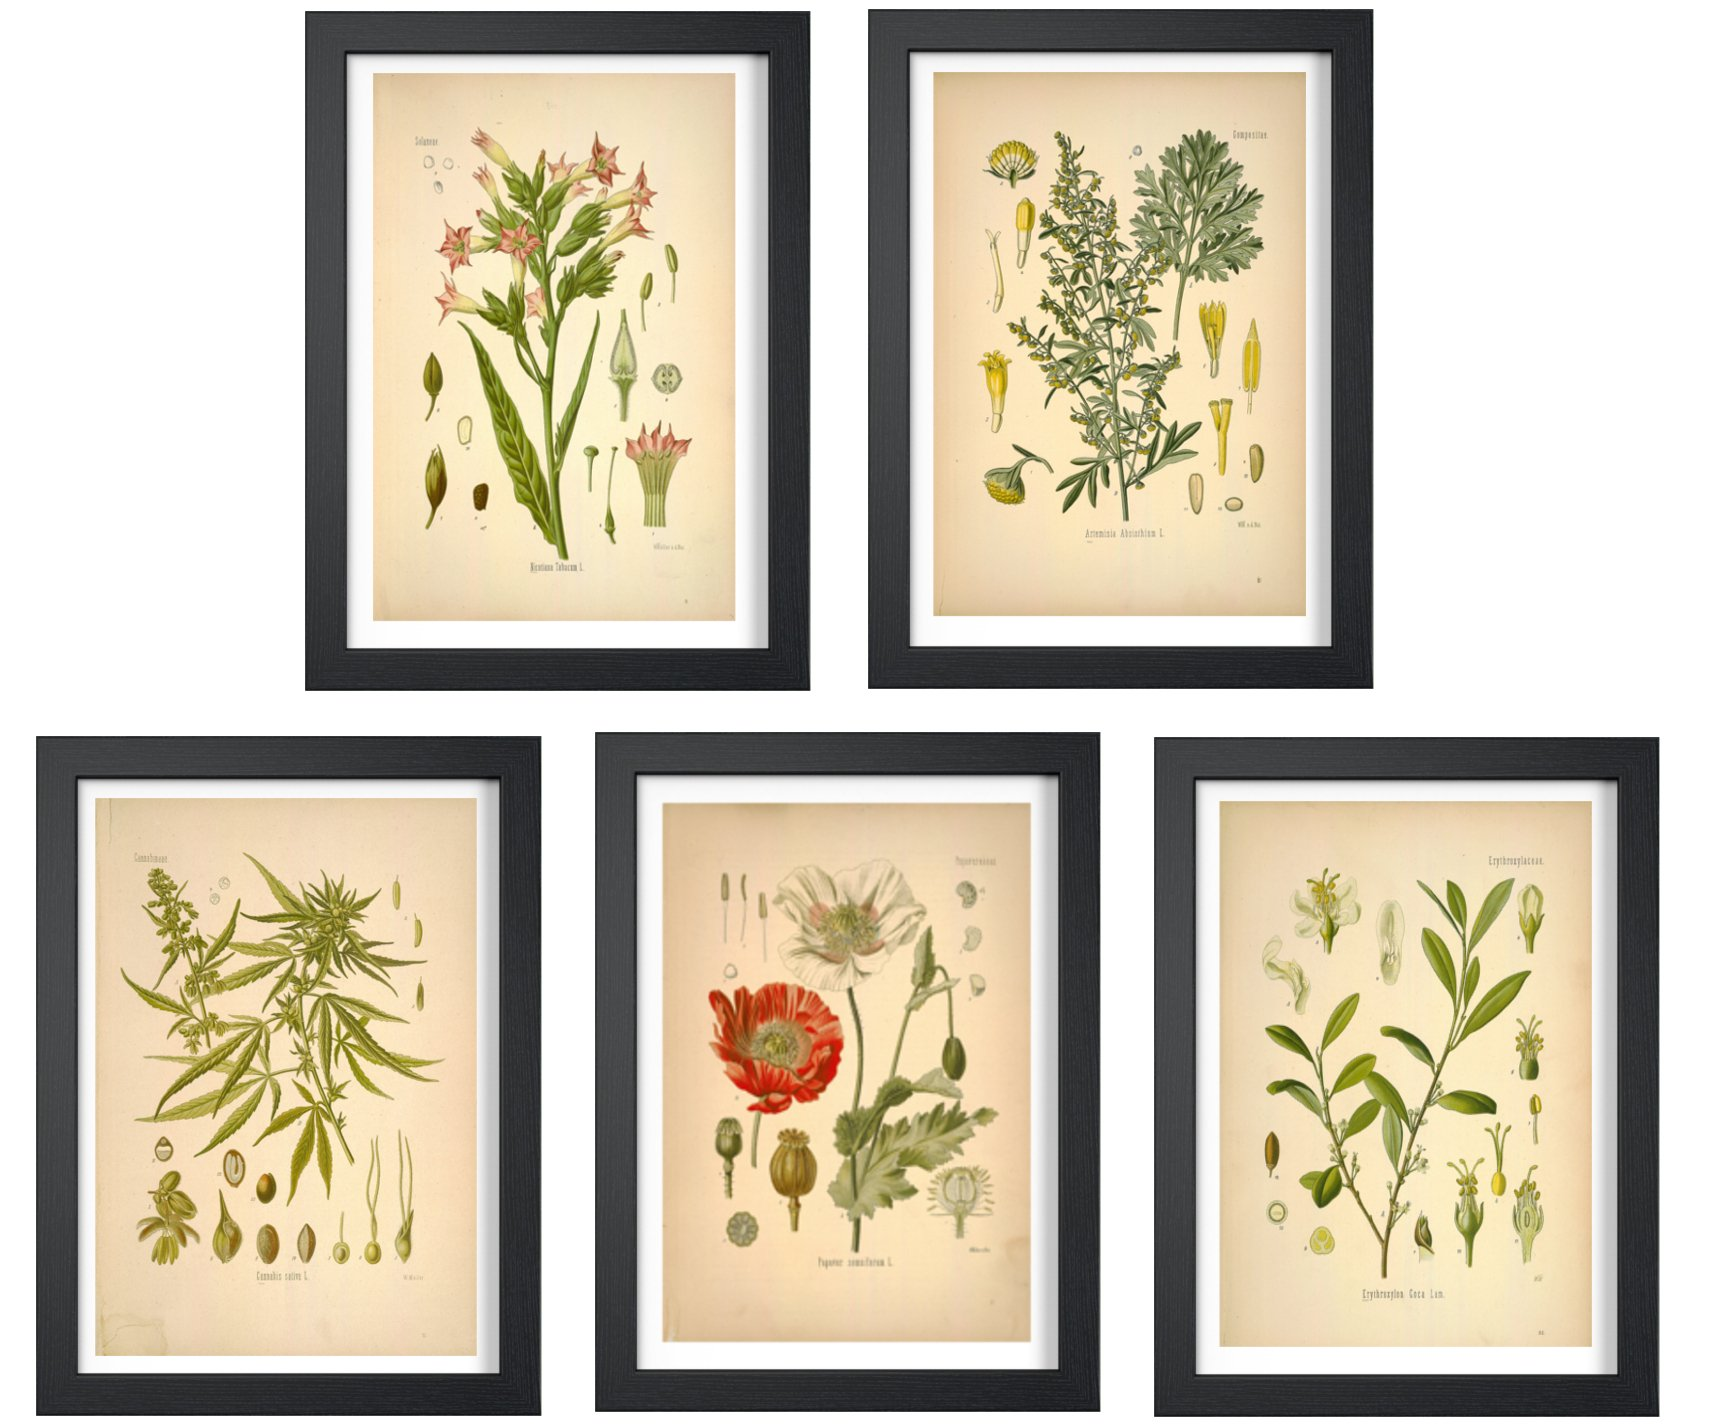 Ink Inc. Psychoactive Plants Botanical Drawings Vintage Art Prints, Set of 5, 8x10in, Unframed, Cannabis Coca Opium Poppy Tobacco Wormwood